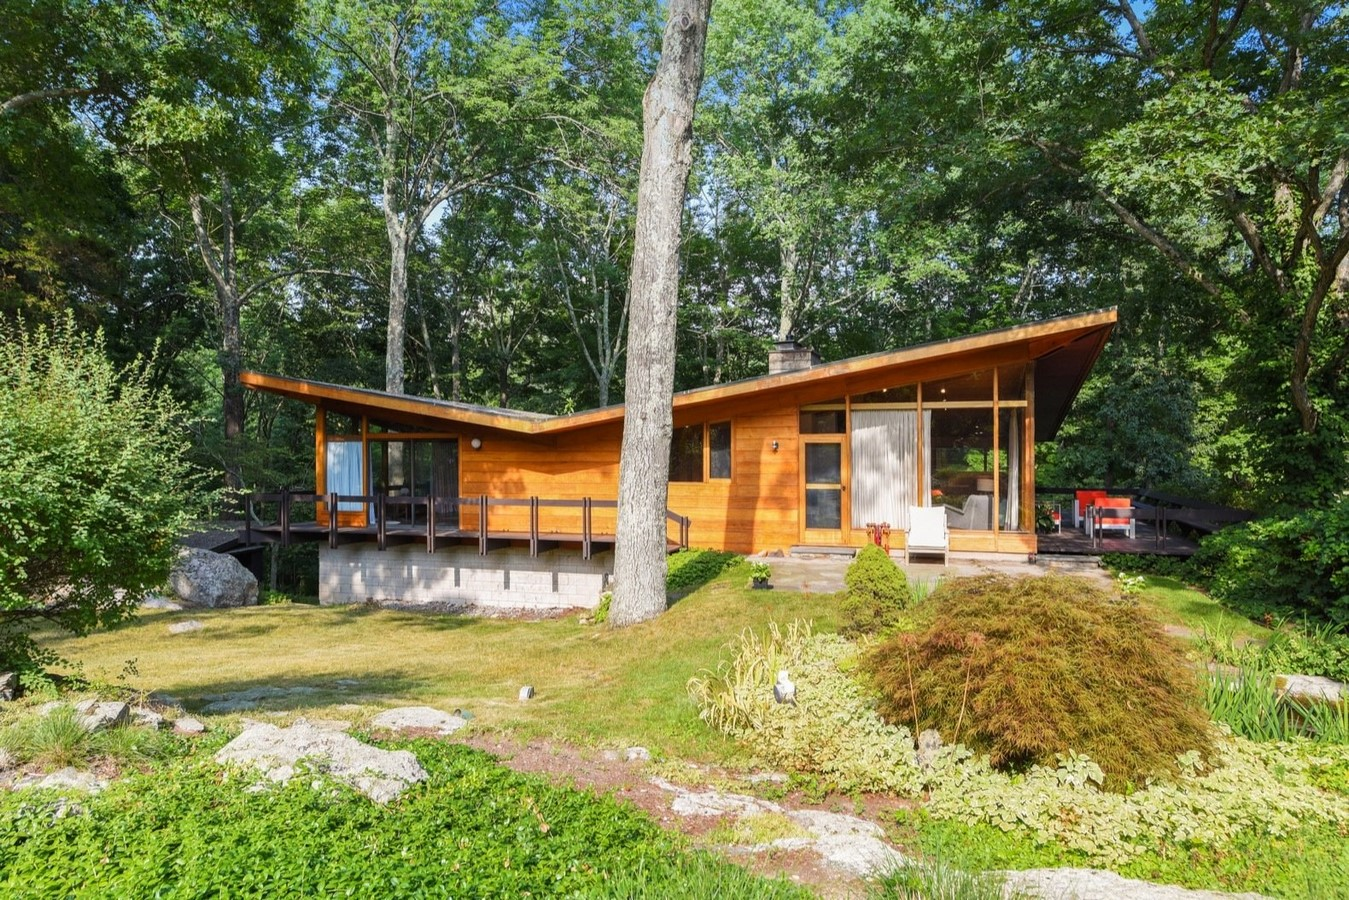 10 Examples of butterfly roofing in the Mid-Century Classic Architecture - Sheet8